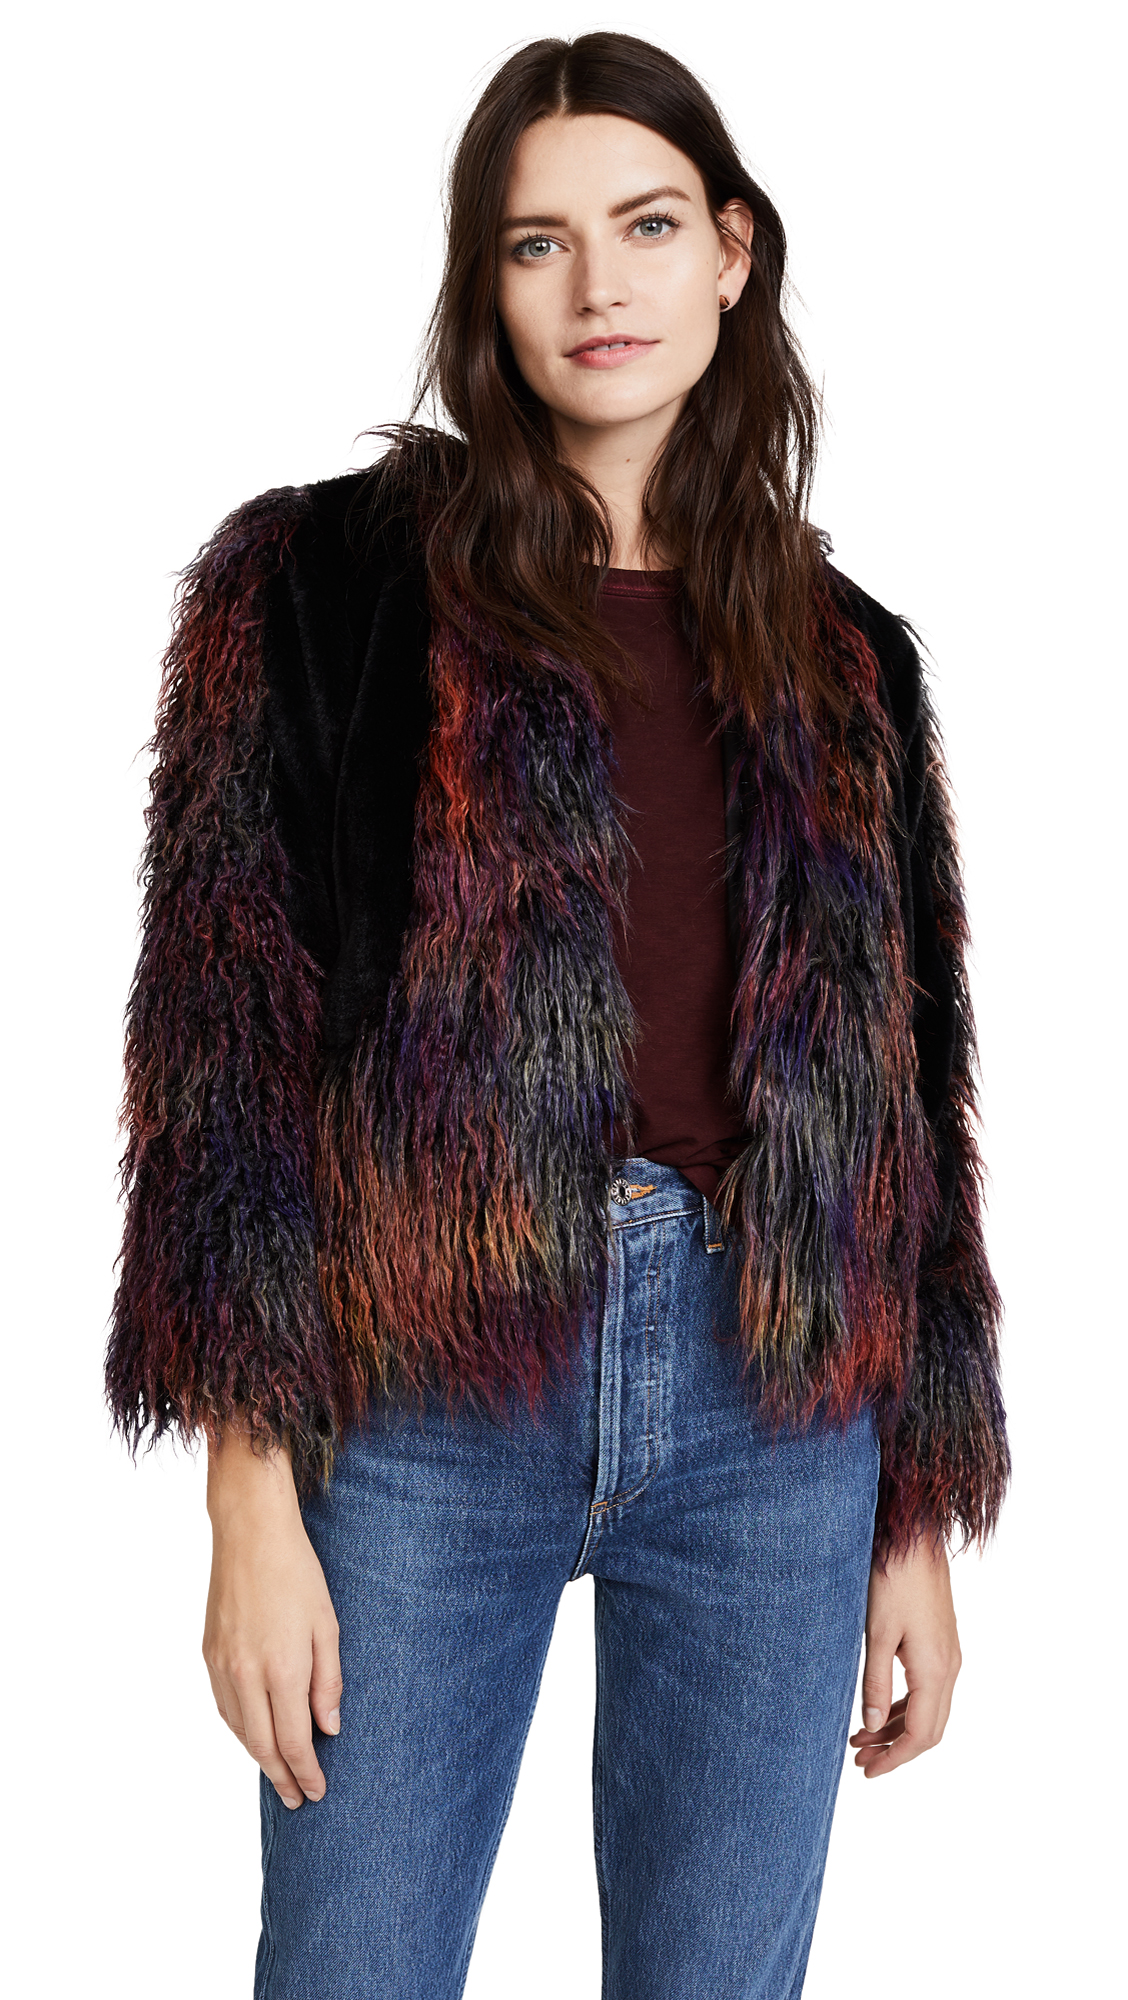 Anna Sui Rainbow Mongolian Faux Fur Jacket - Black Multi